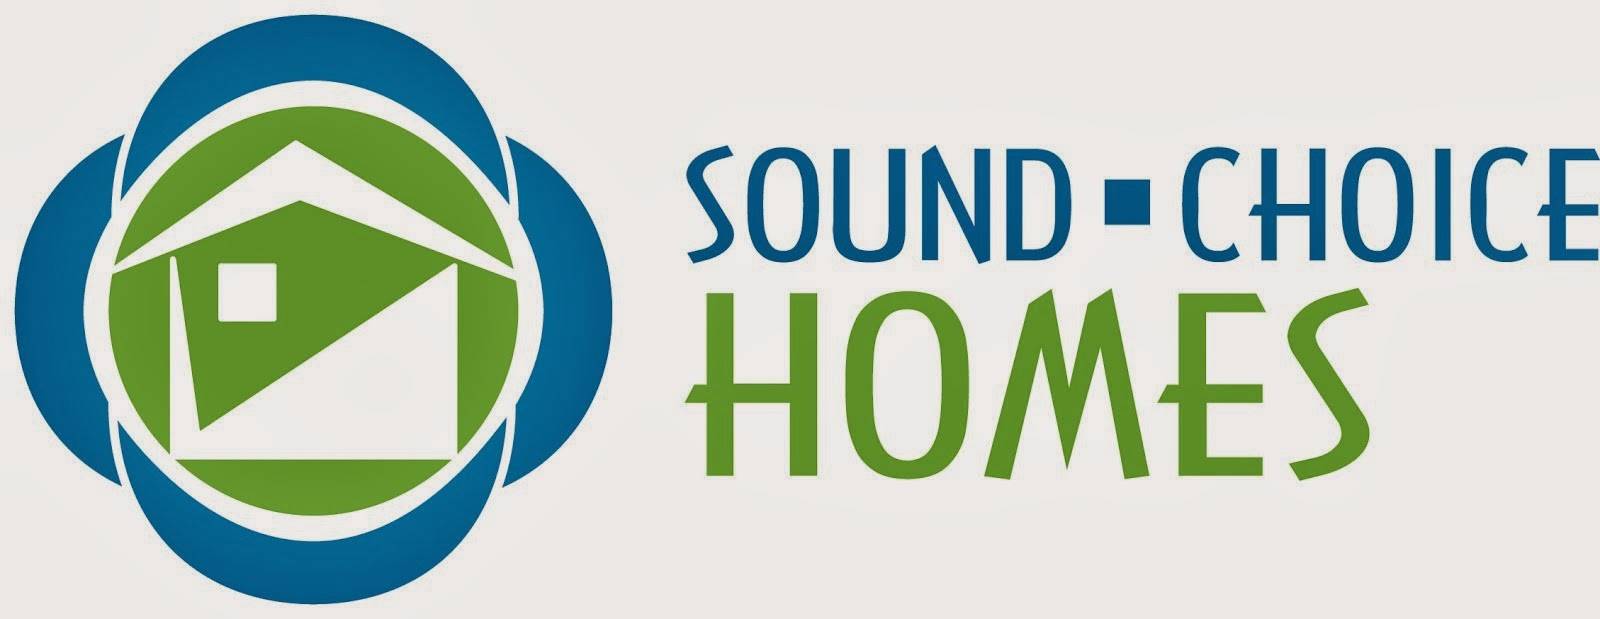 Sound Choice Homes